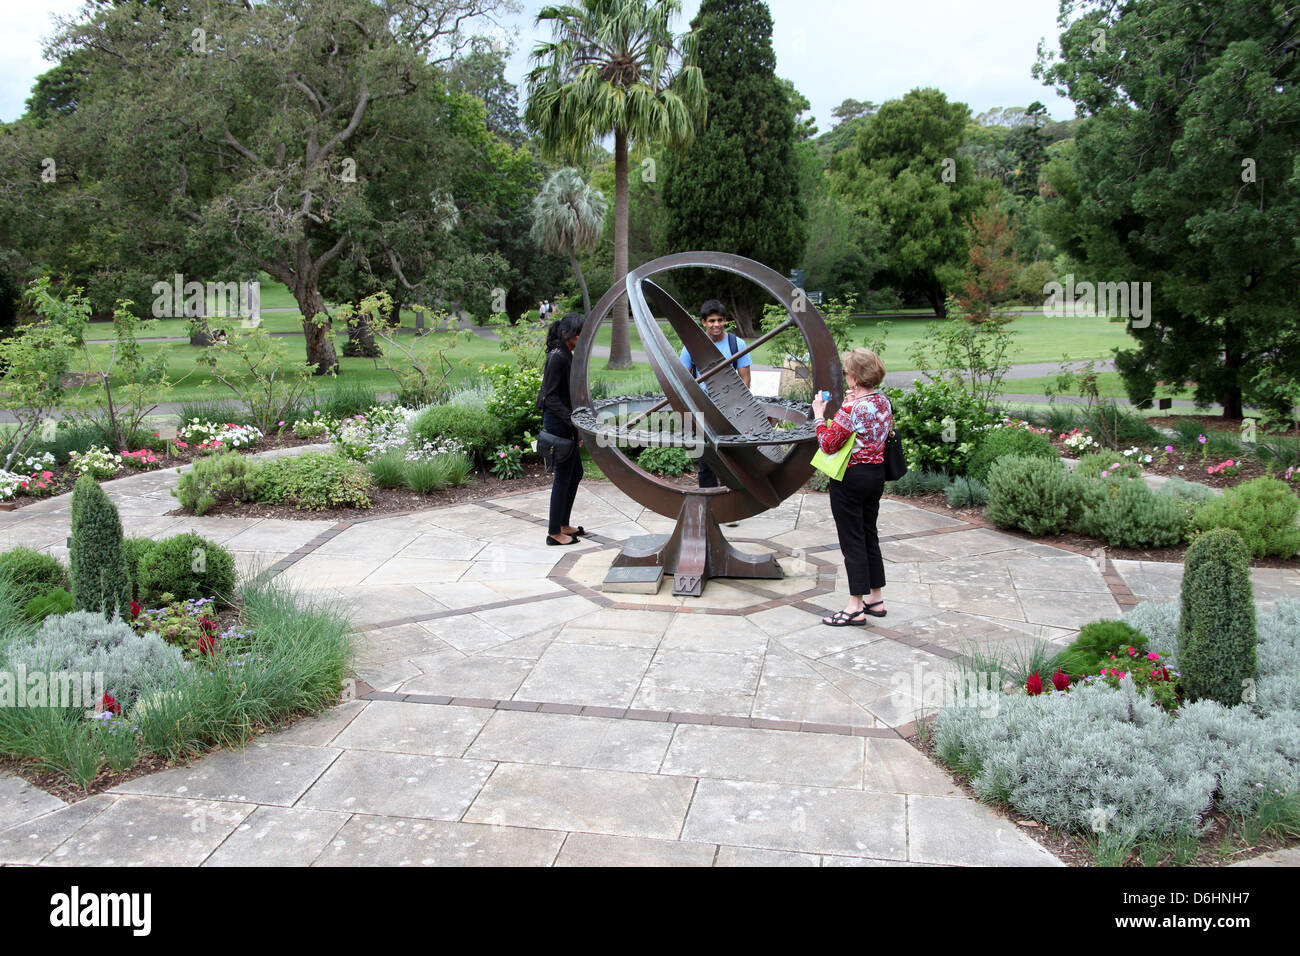 Armillary Sundial In The Herb Garden Of The Royal Botanic Gardens Of Sydney    Stock Image